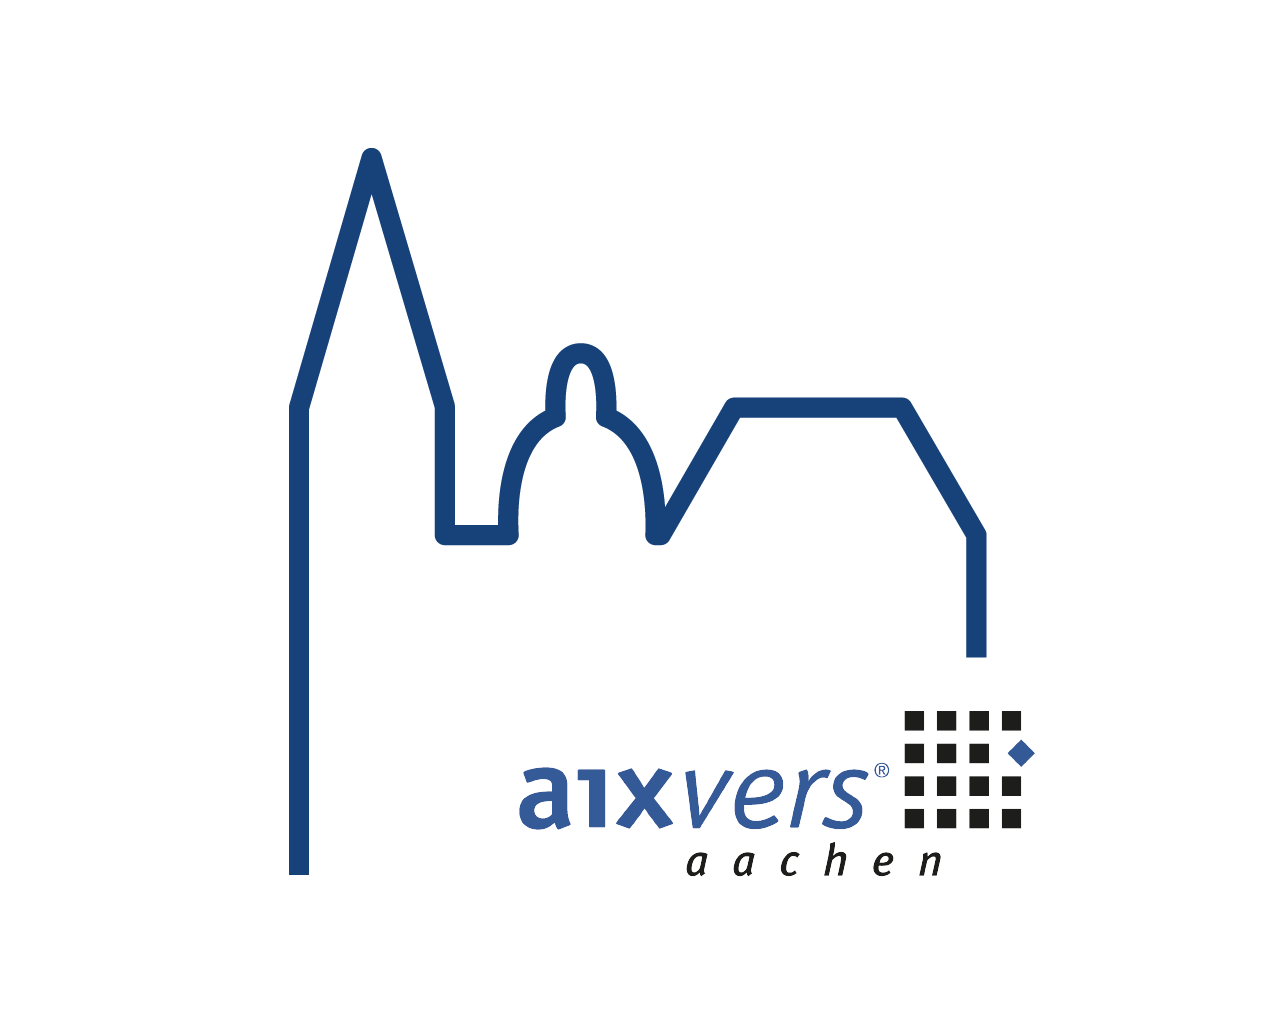 images/Icons/aixvers_Icons_Standort_Aachen.png